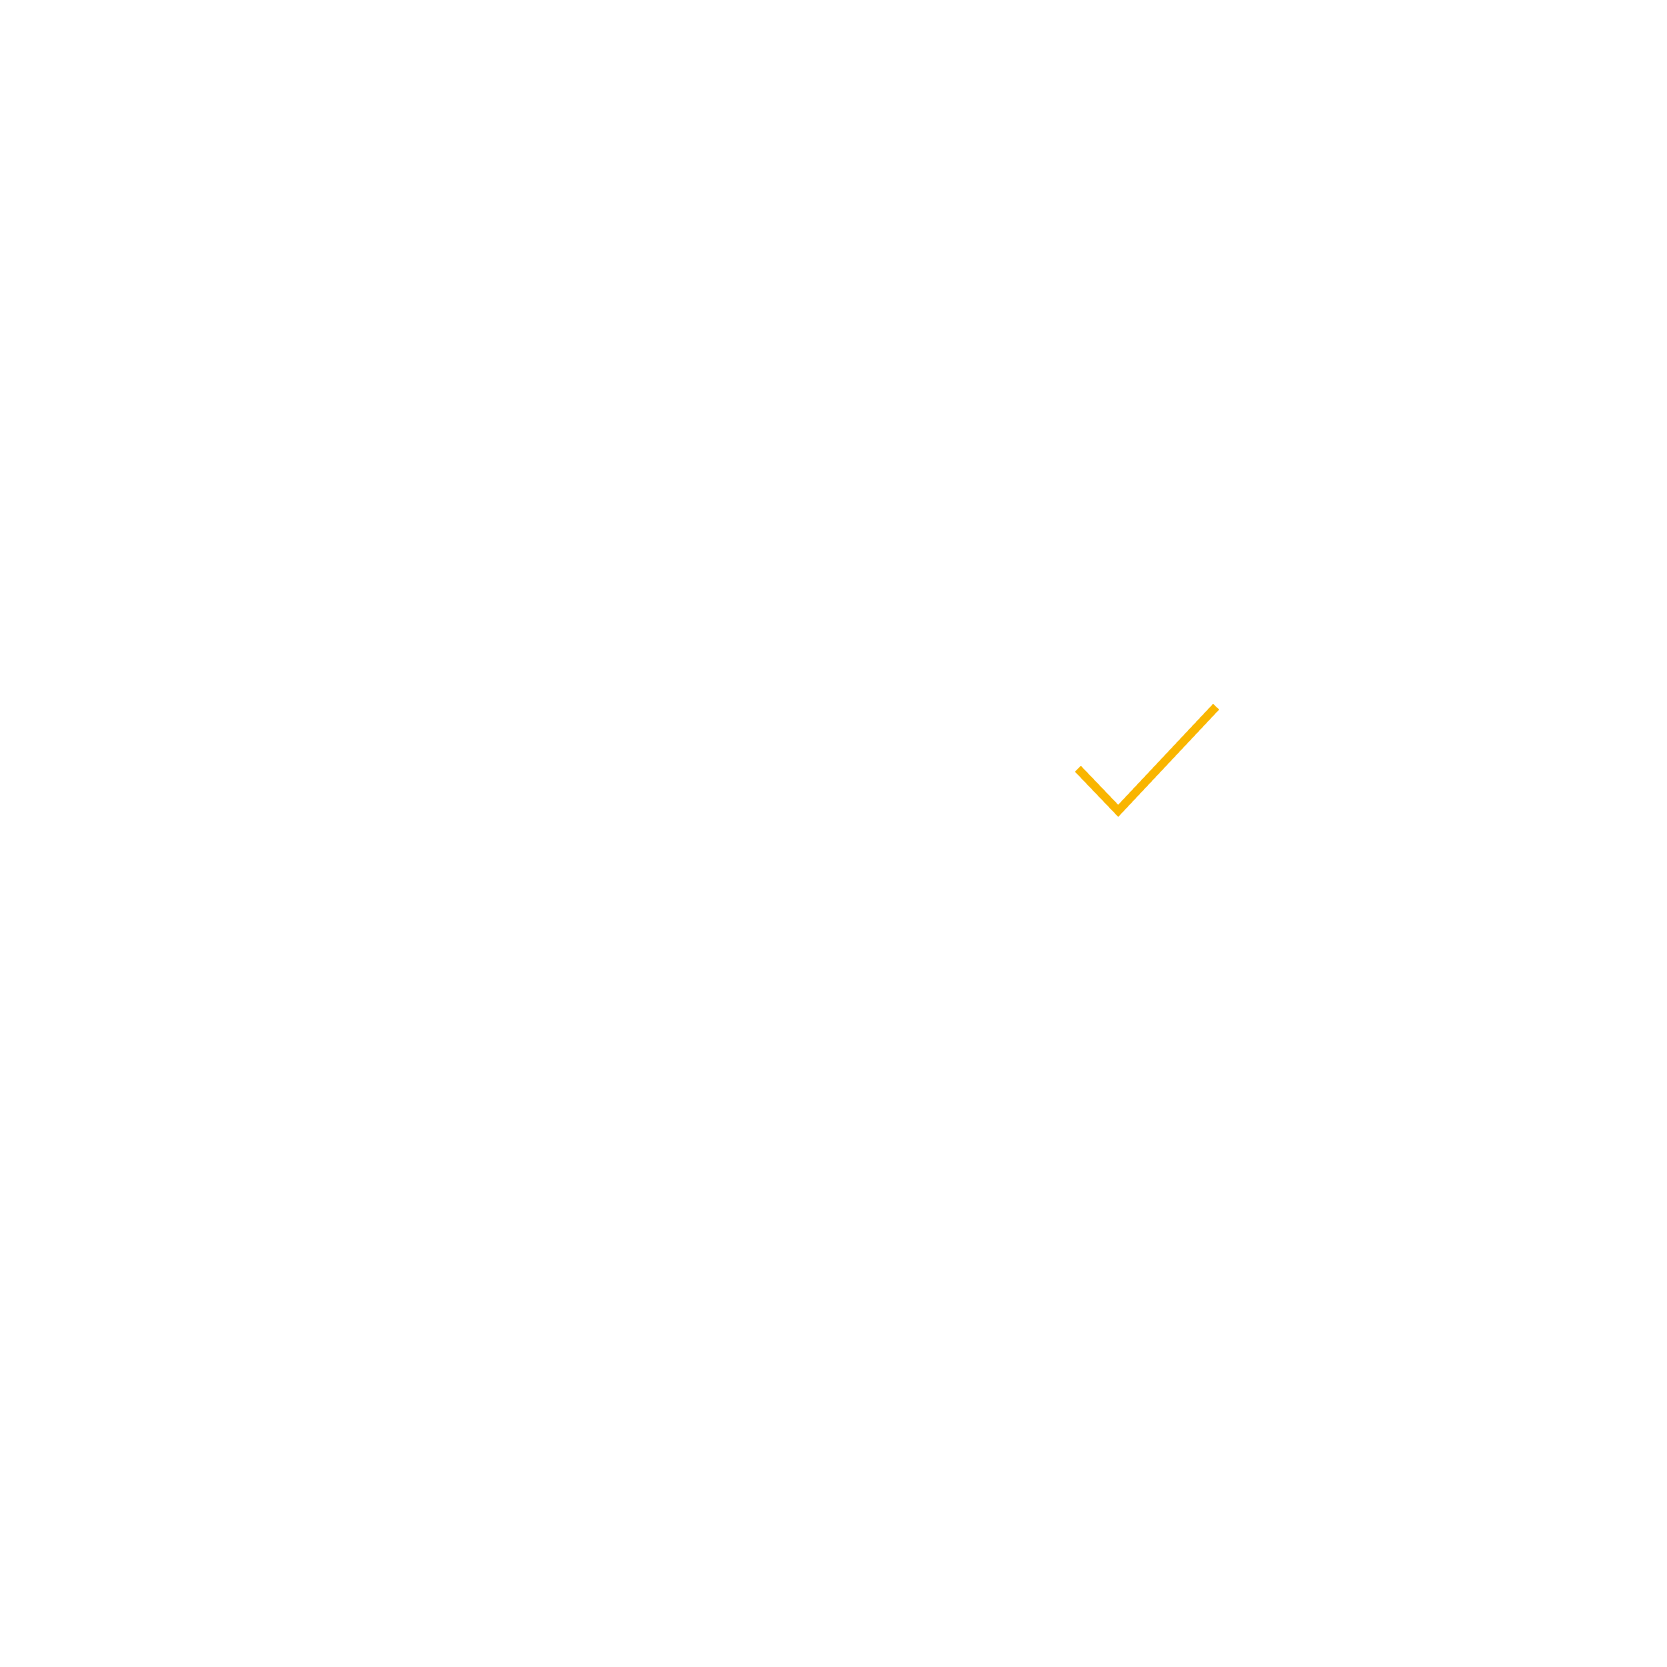 SAT-7 Every day of the year